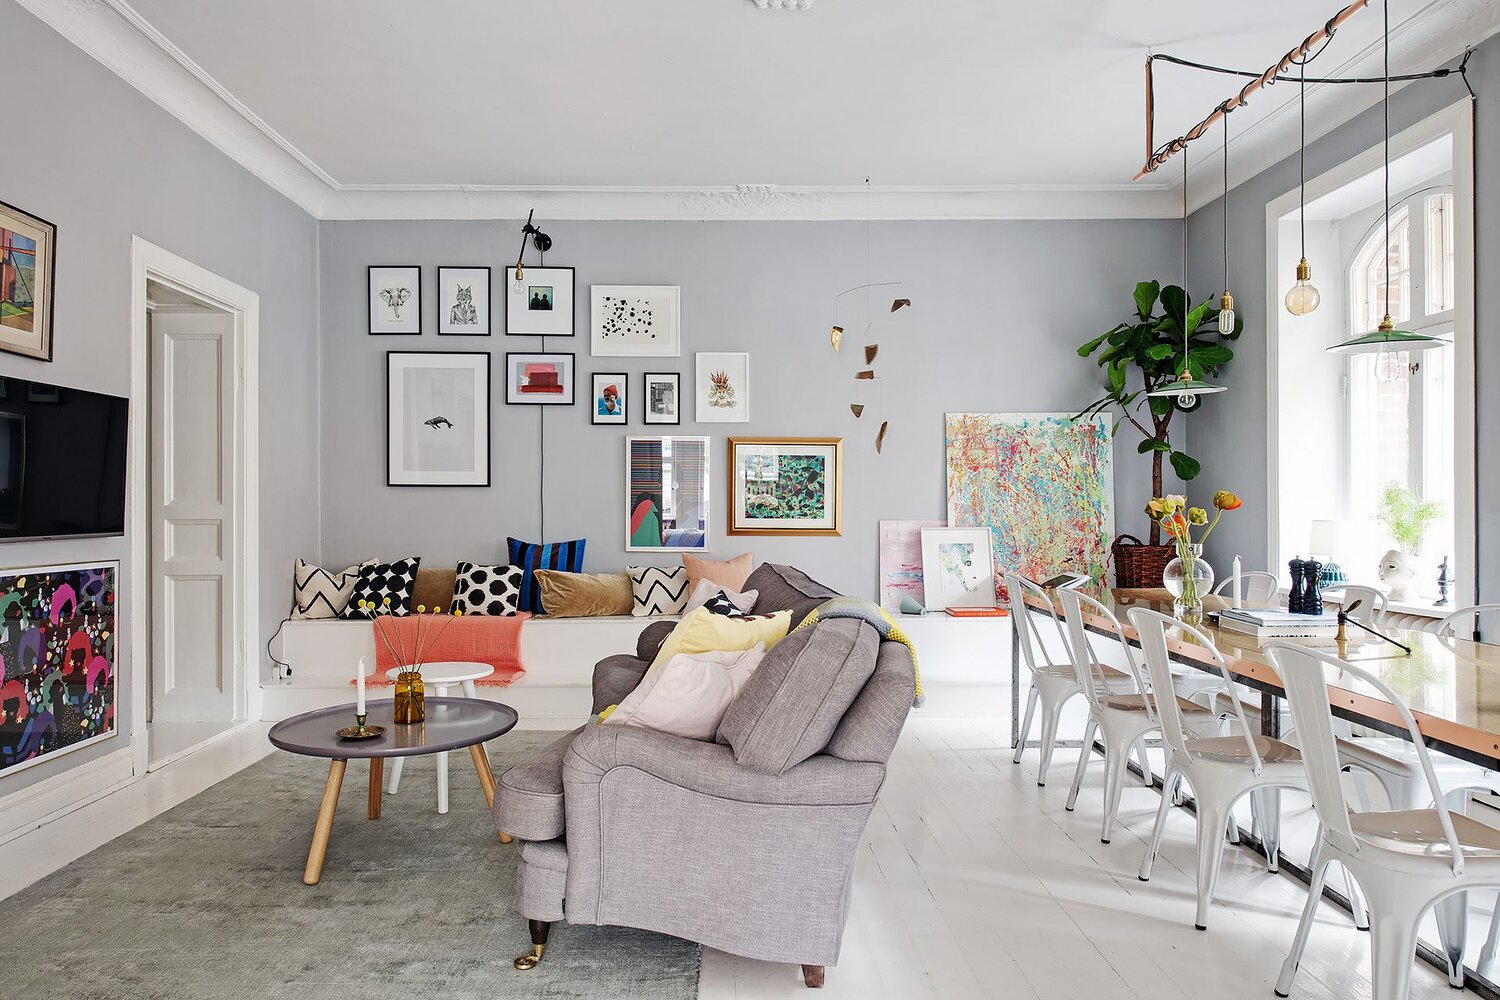 A Scandinavian Apartment Decorated with Bright Pops of Color